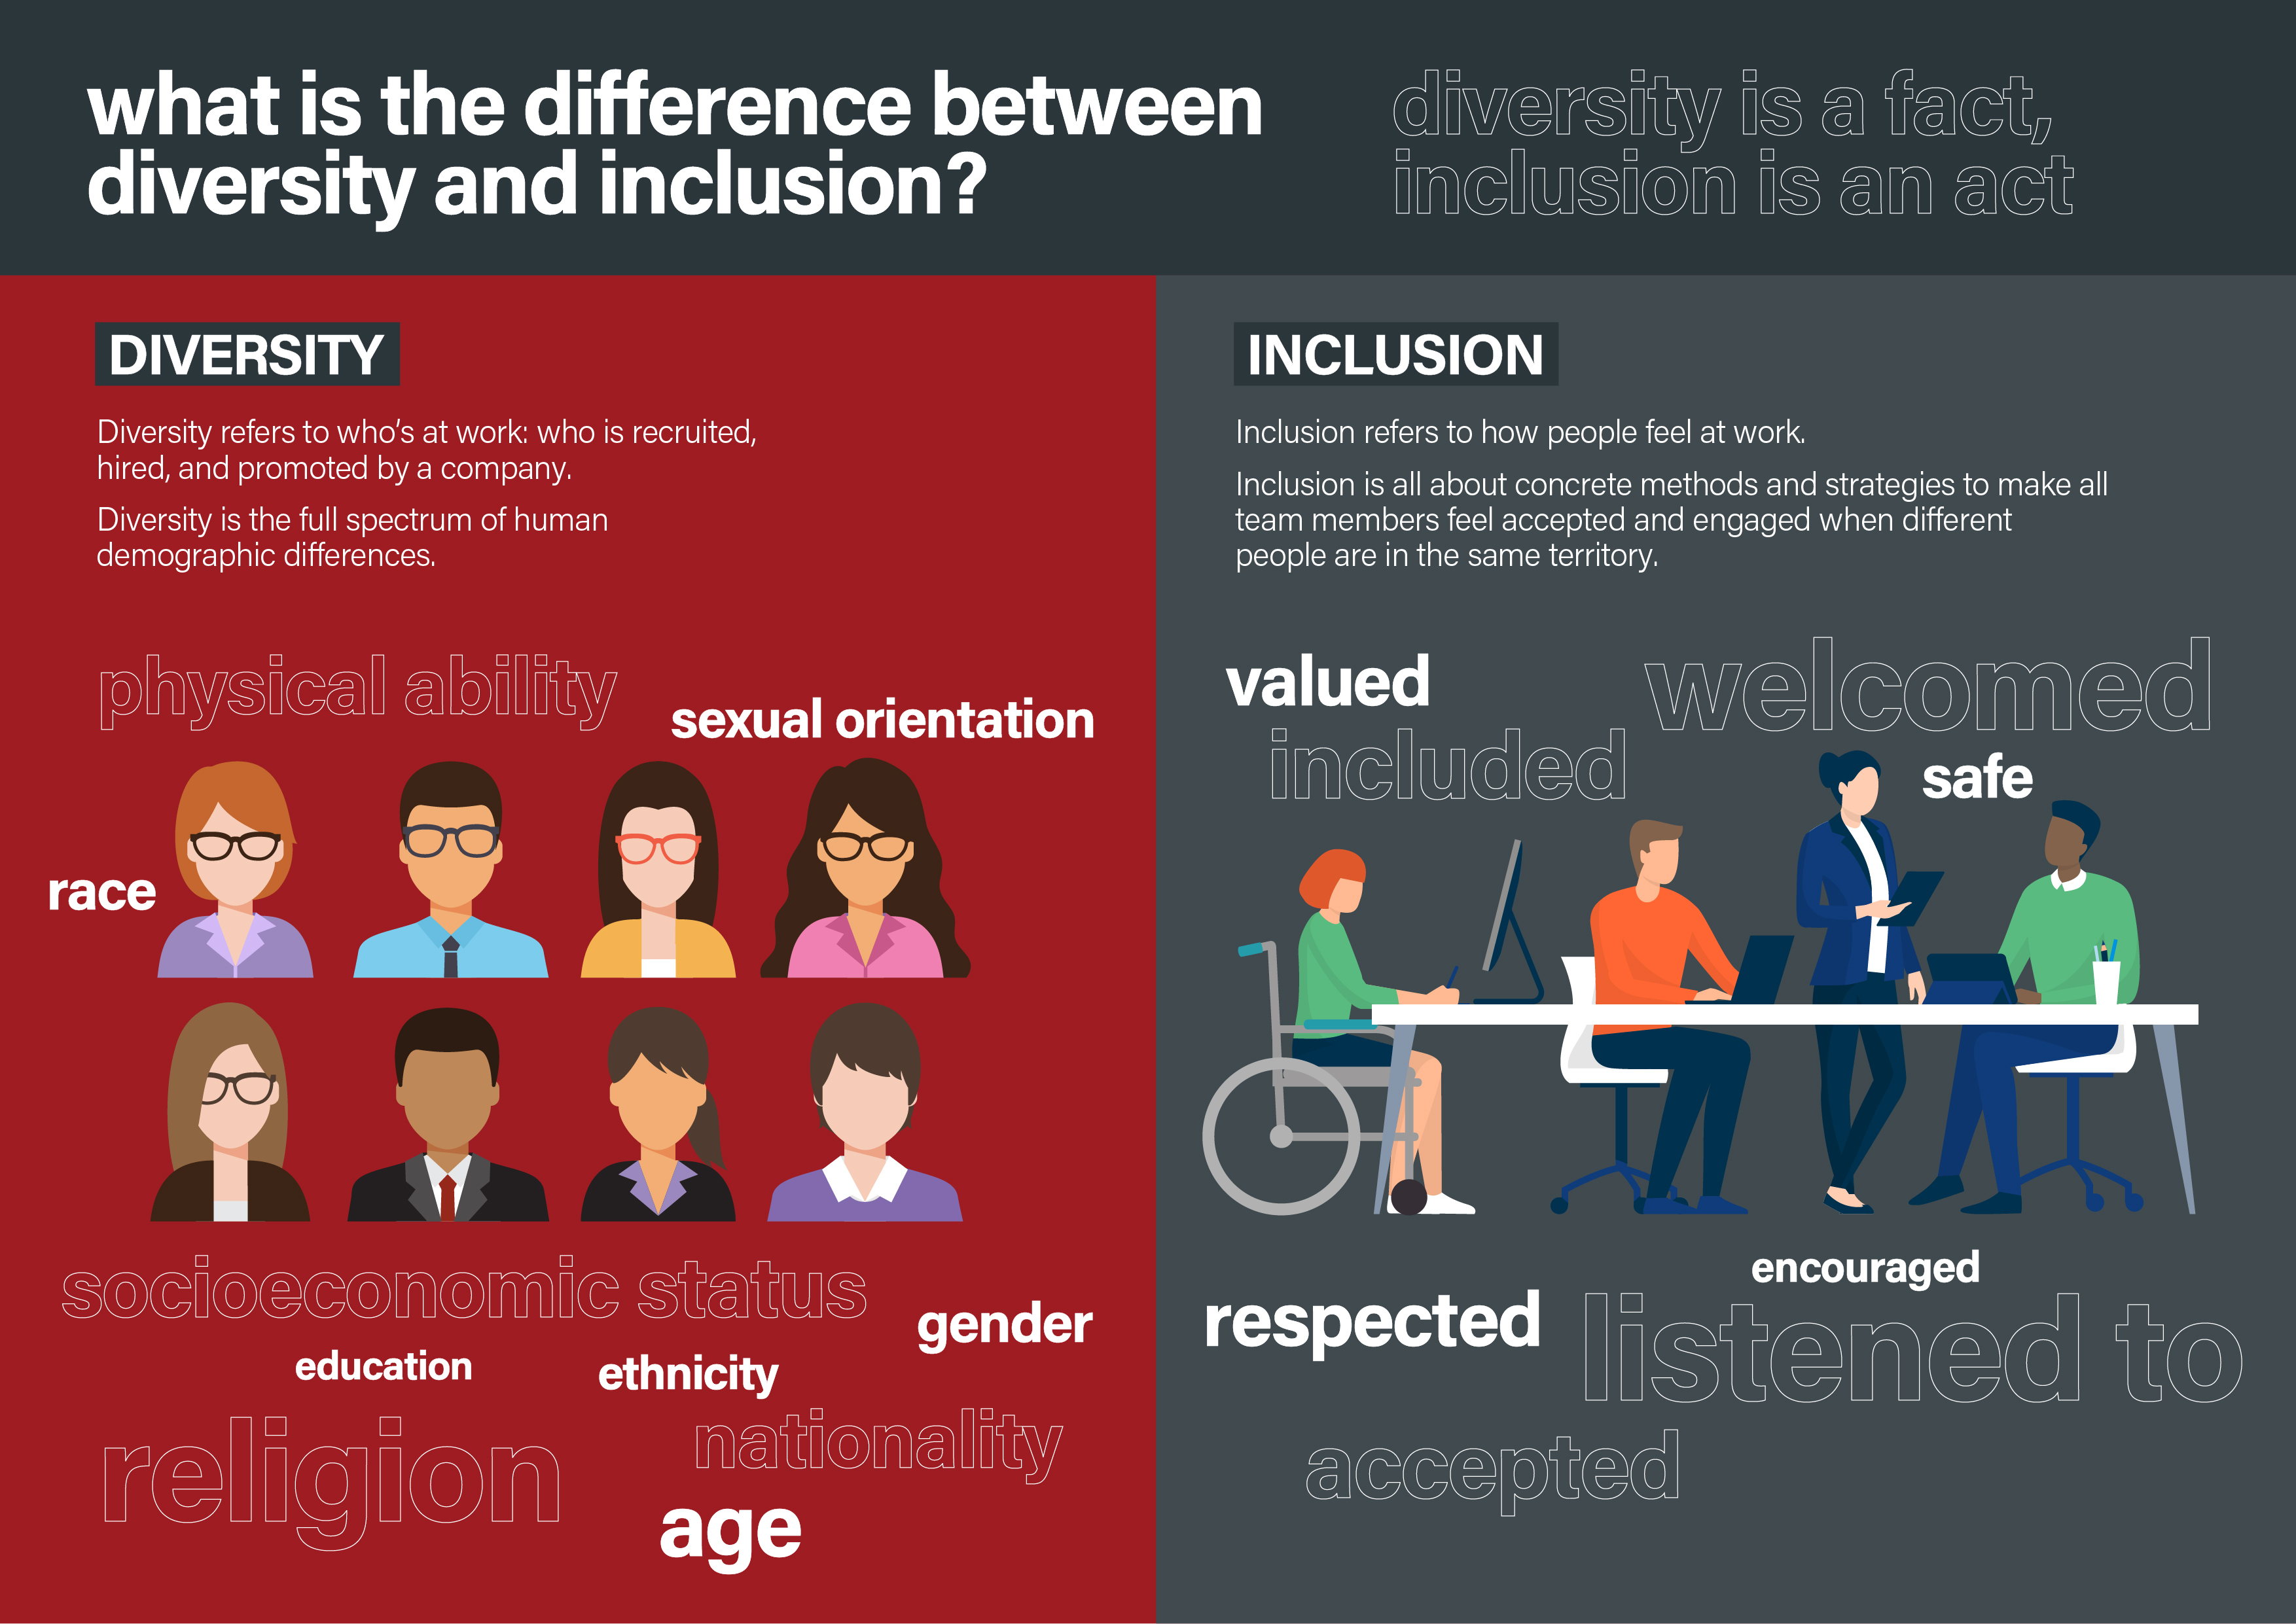 difference between diversity and inclusion infographic-02